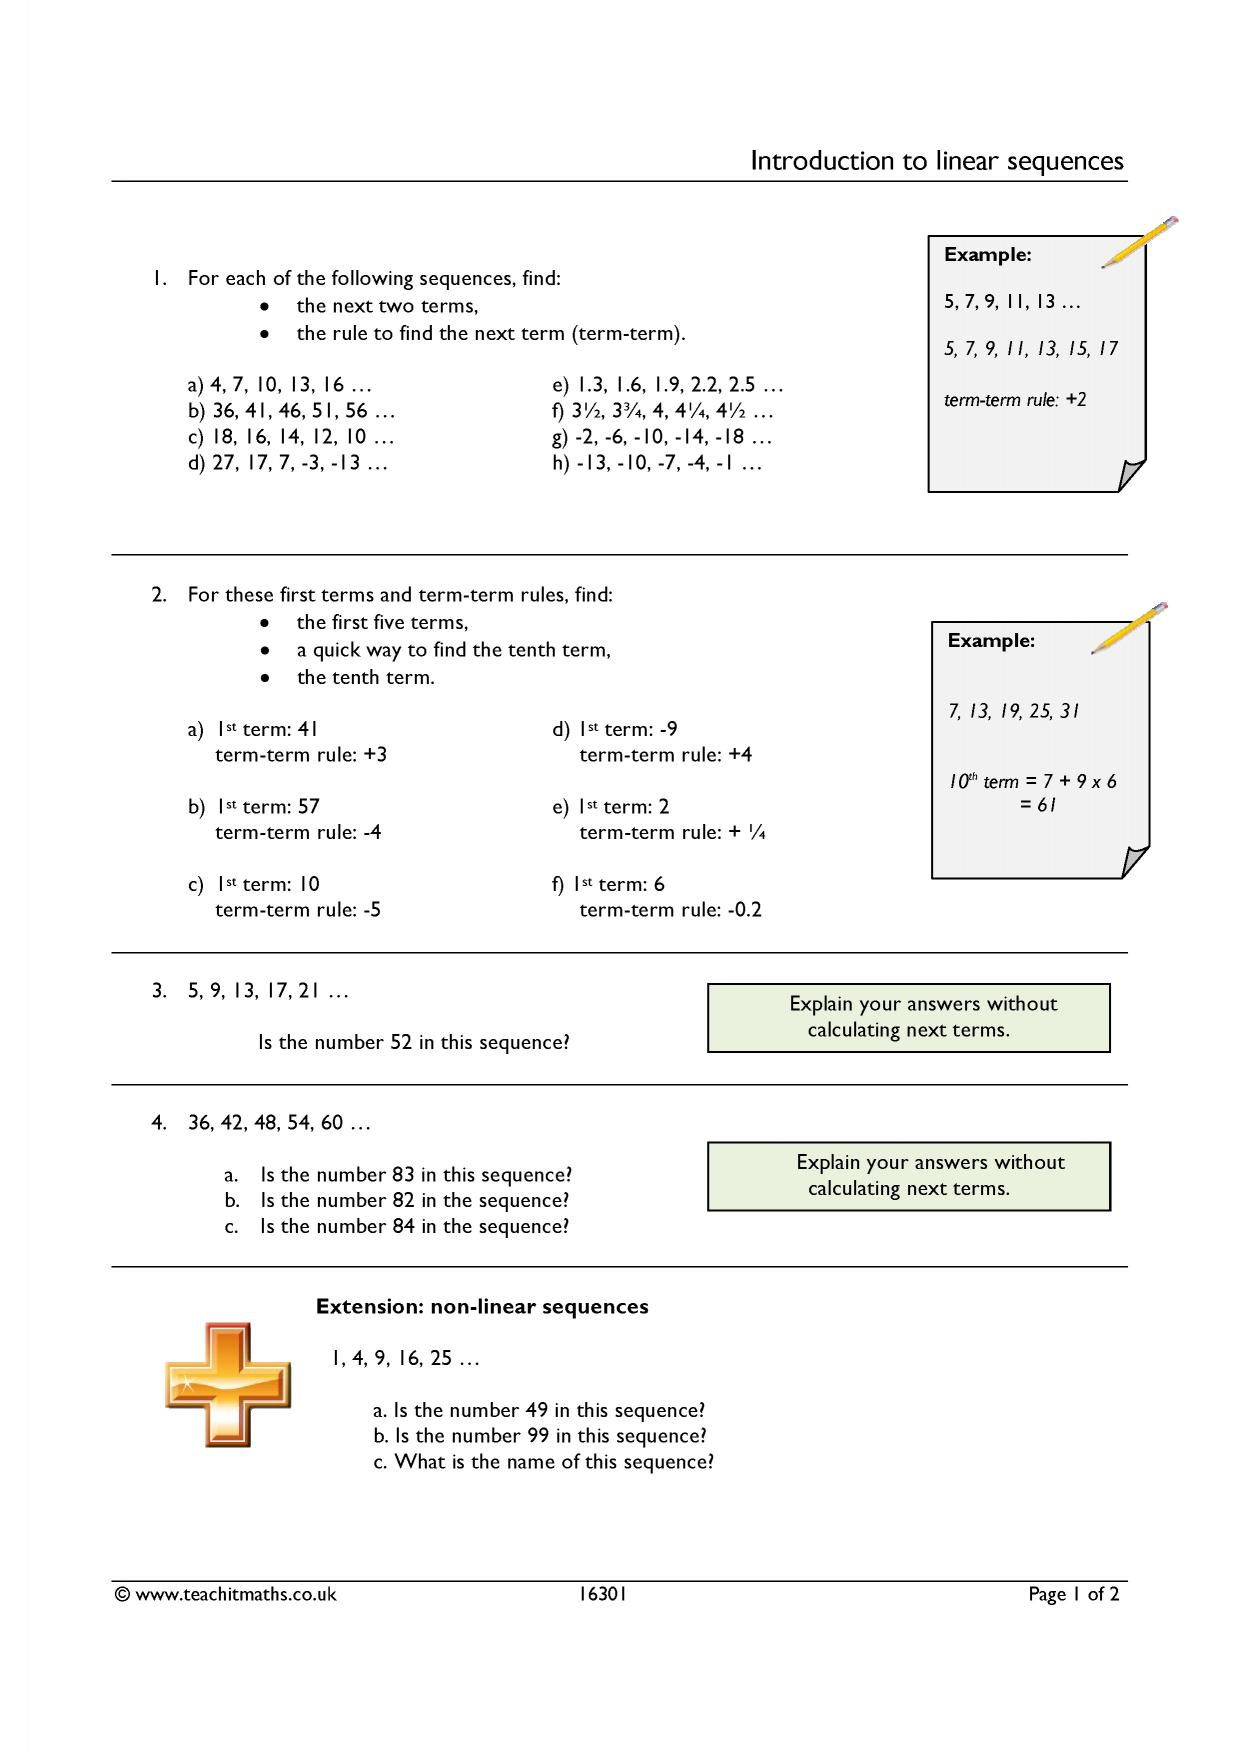 Nth Term Rule Of A Sequence Resources Tes Algebra 5